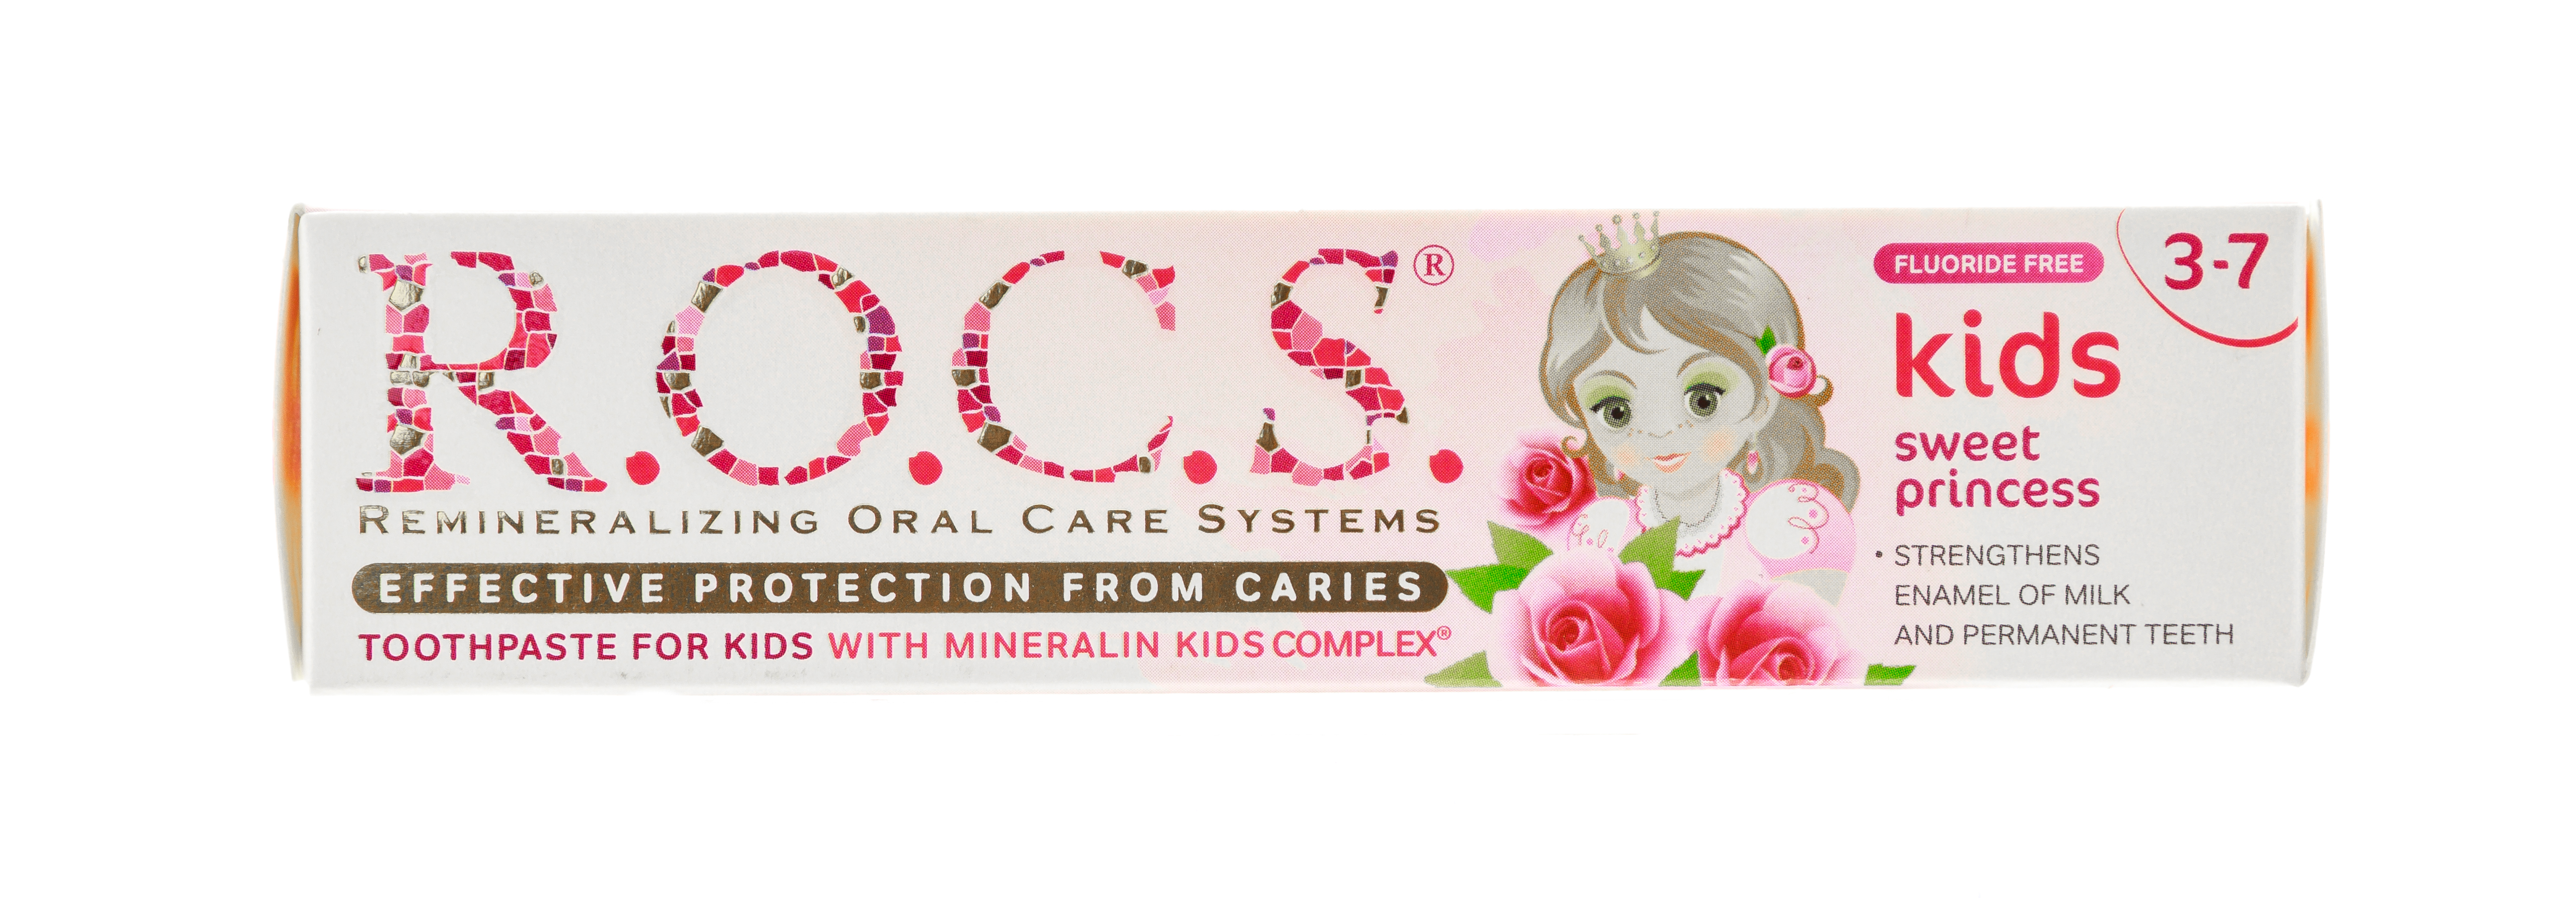 Рокс Зубная паста Kids Sweet Princess с ароматом Розы, 45 г (R.O.C.S, Kids 3-7 years) фото 6